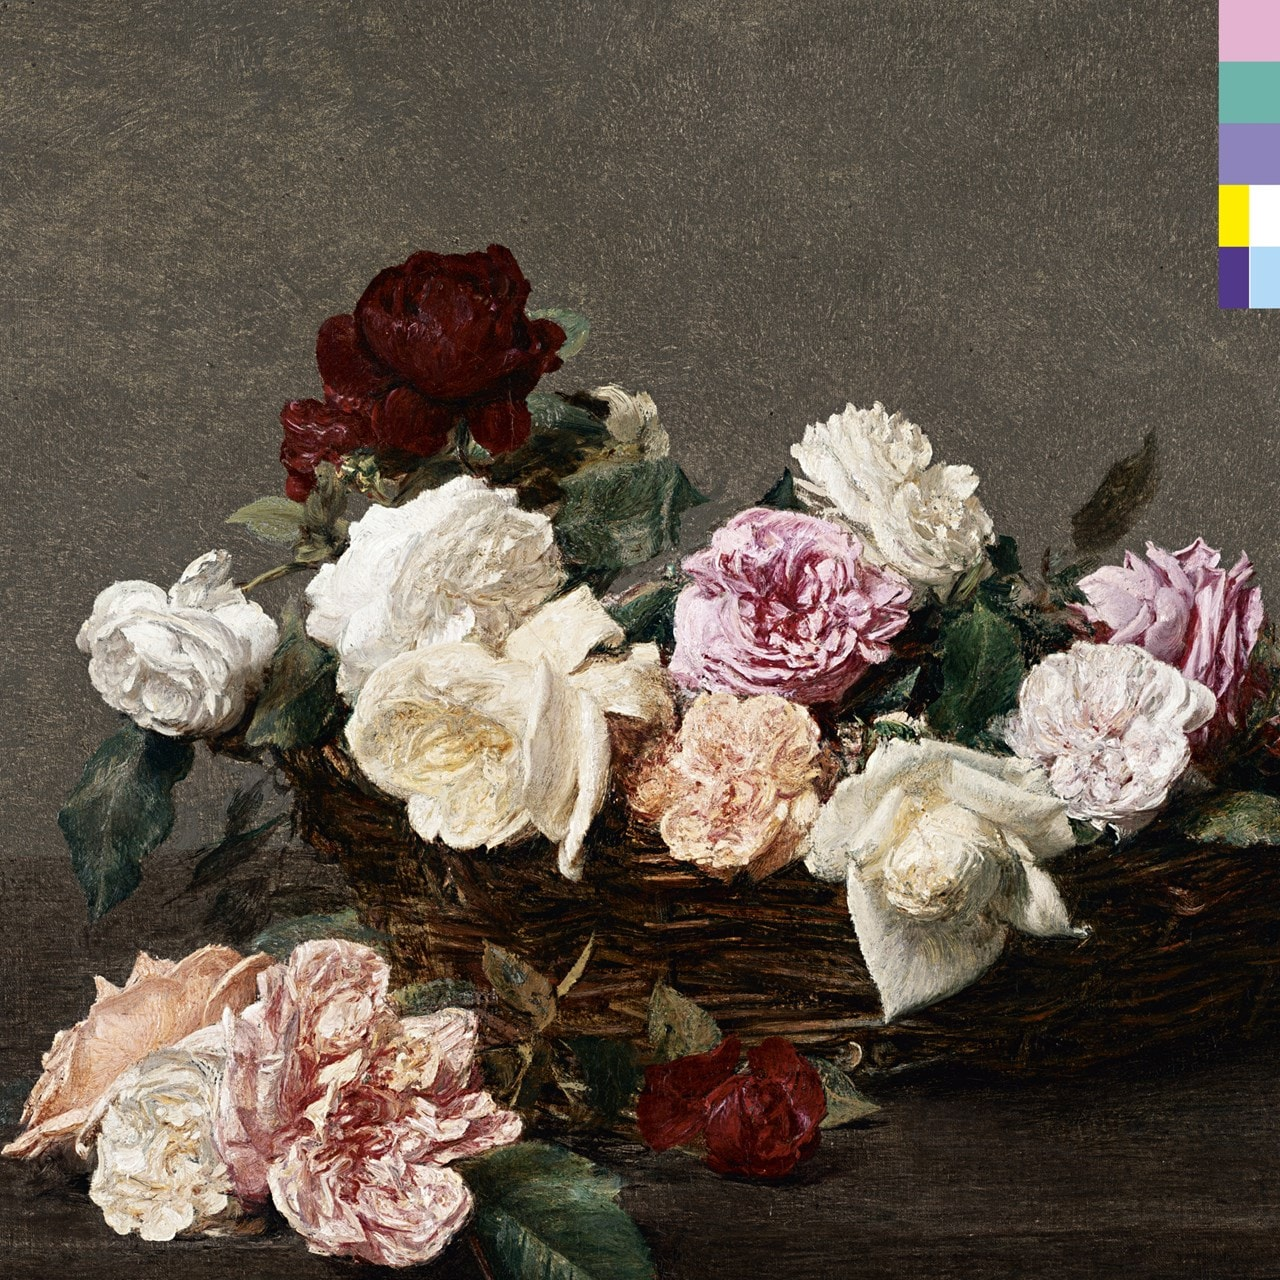 Power, Corruption and Lies (Definitive Edition) - 1